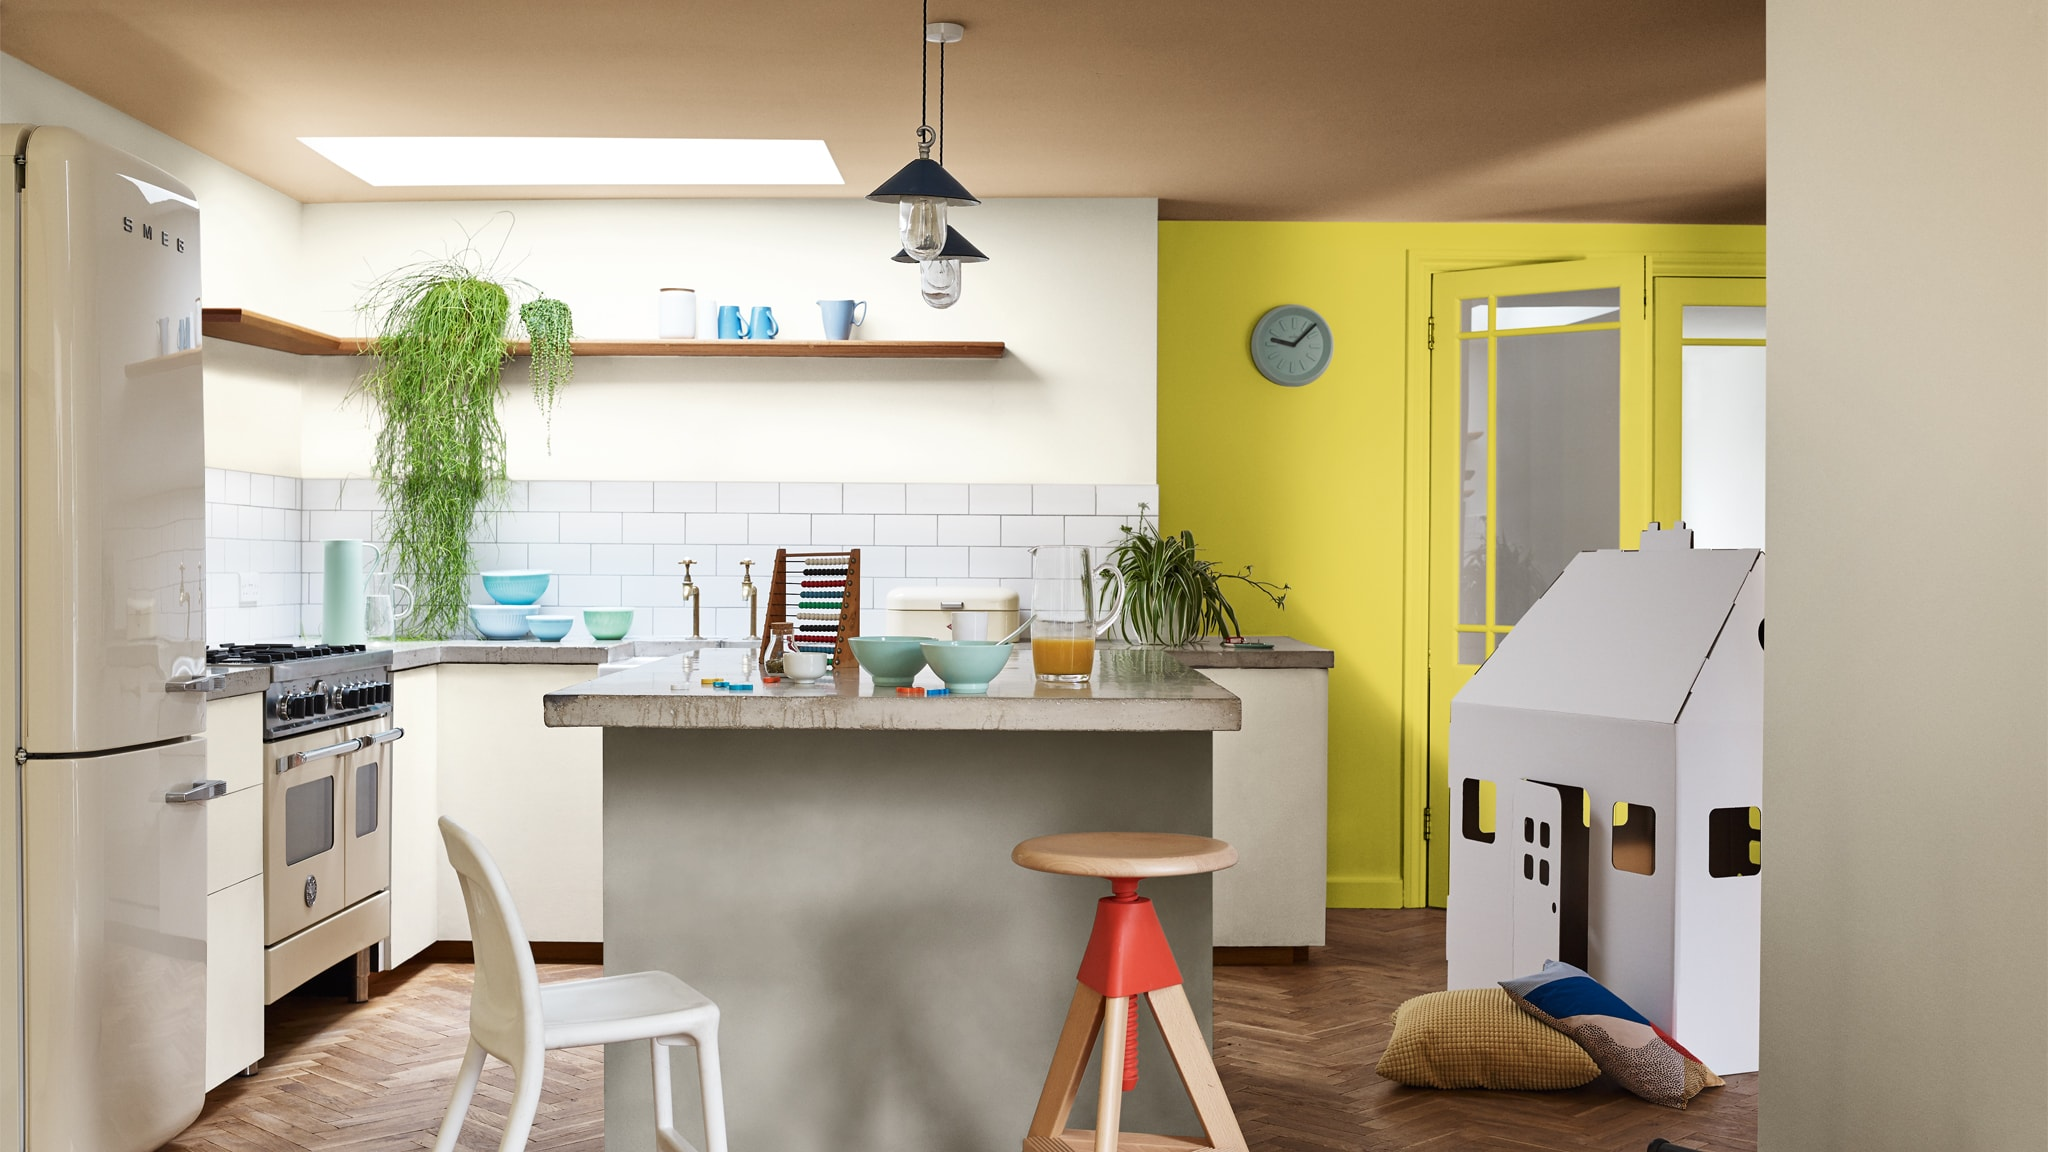 Deco-Paints-Colour-Futures-Colour-of-the-Year-2019-A-place-to-act-Kitchen-Inspiration-49